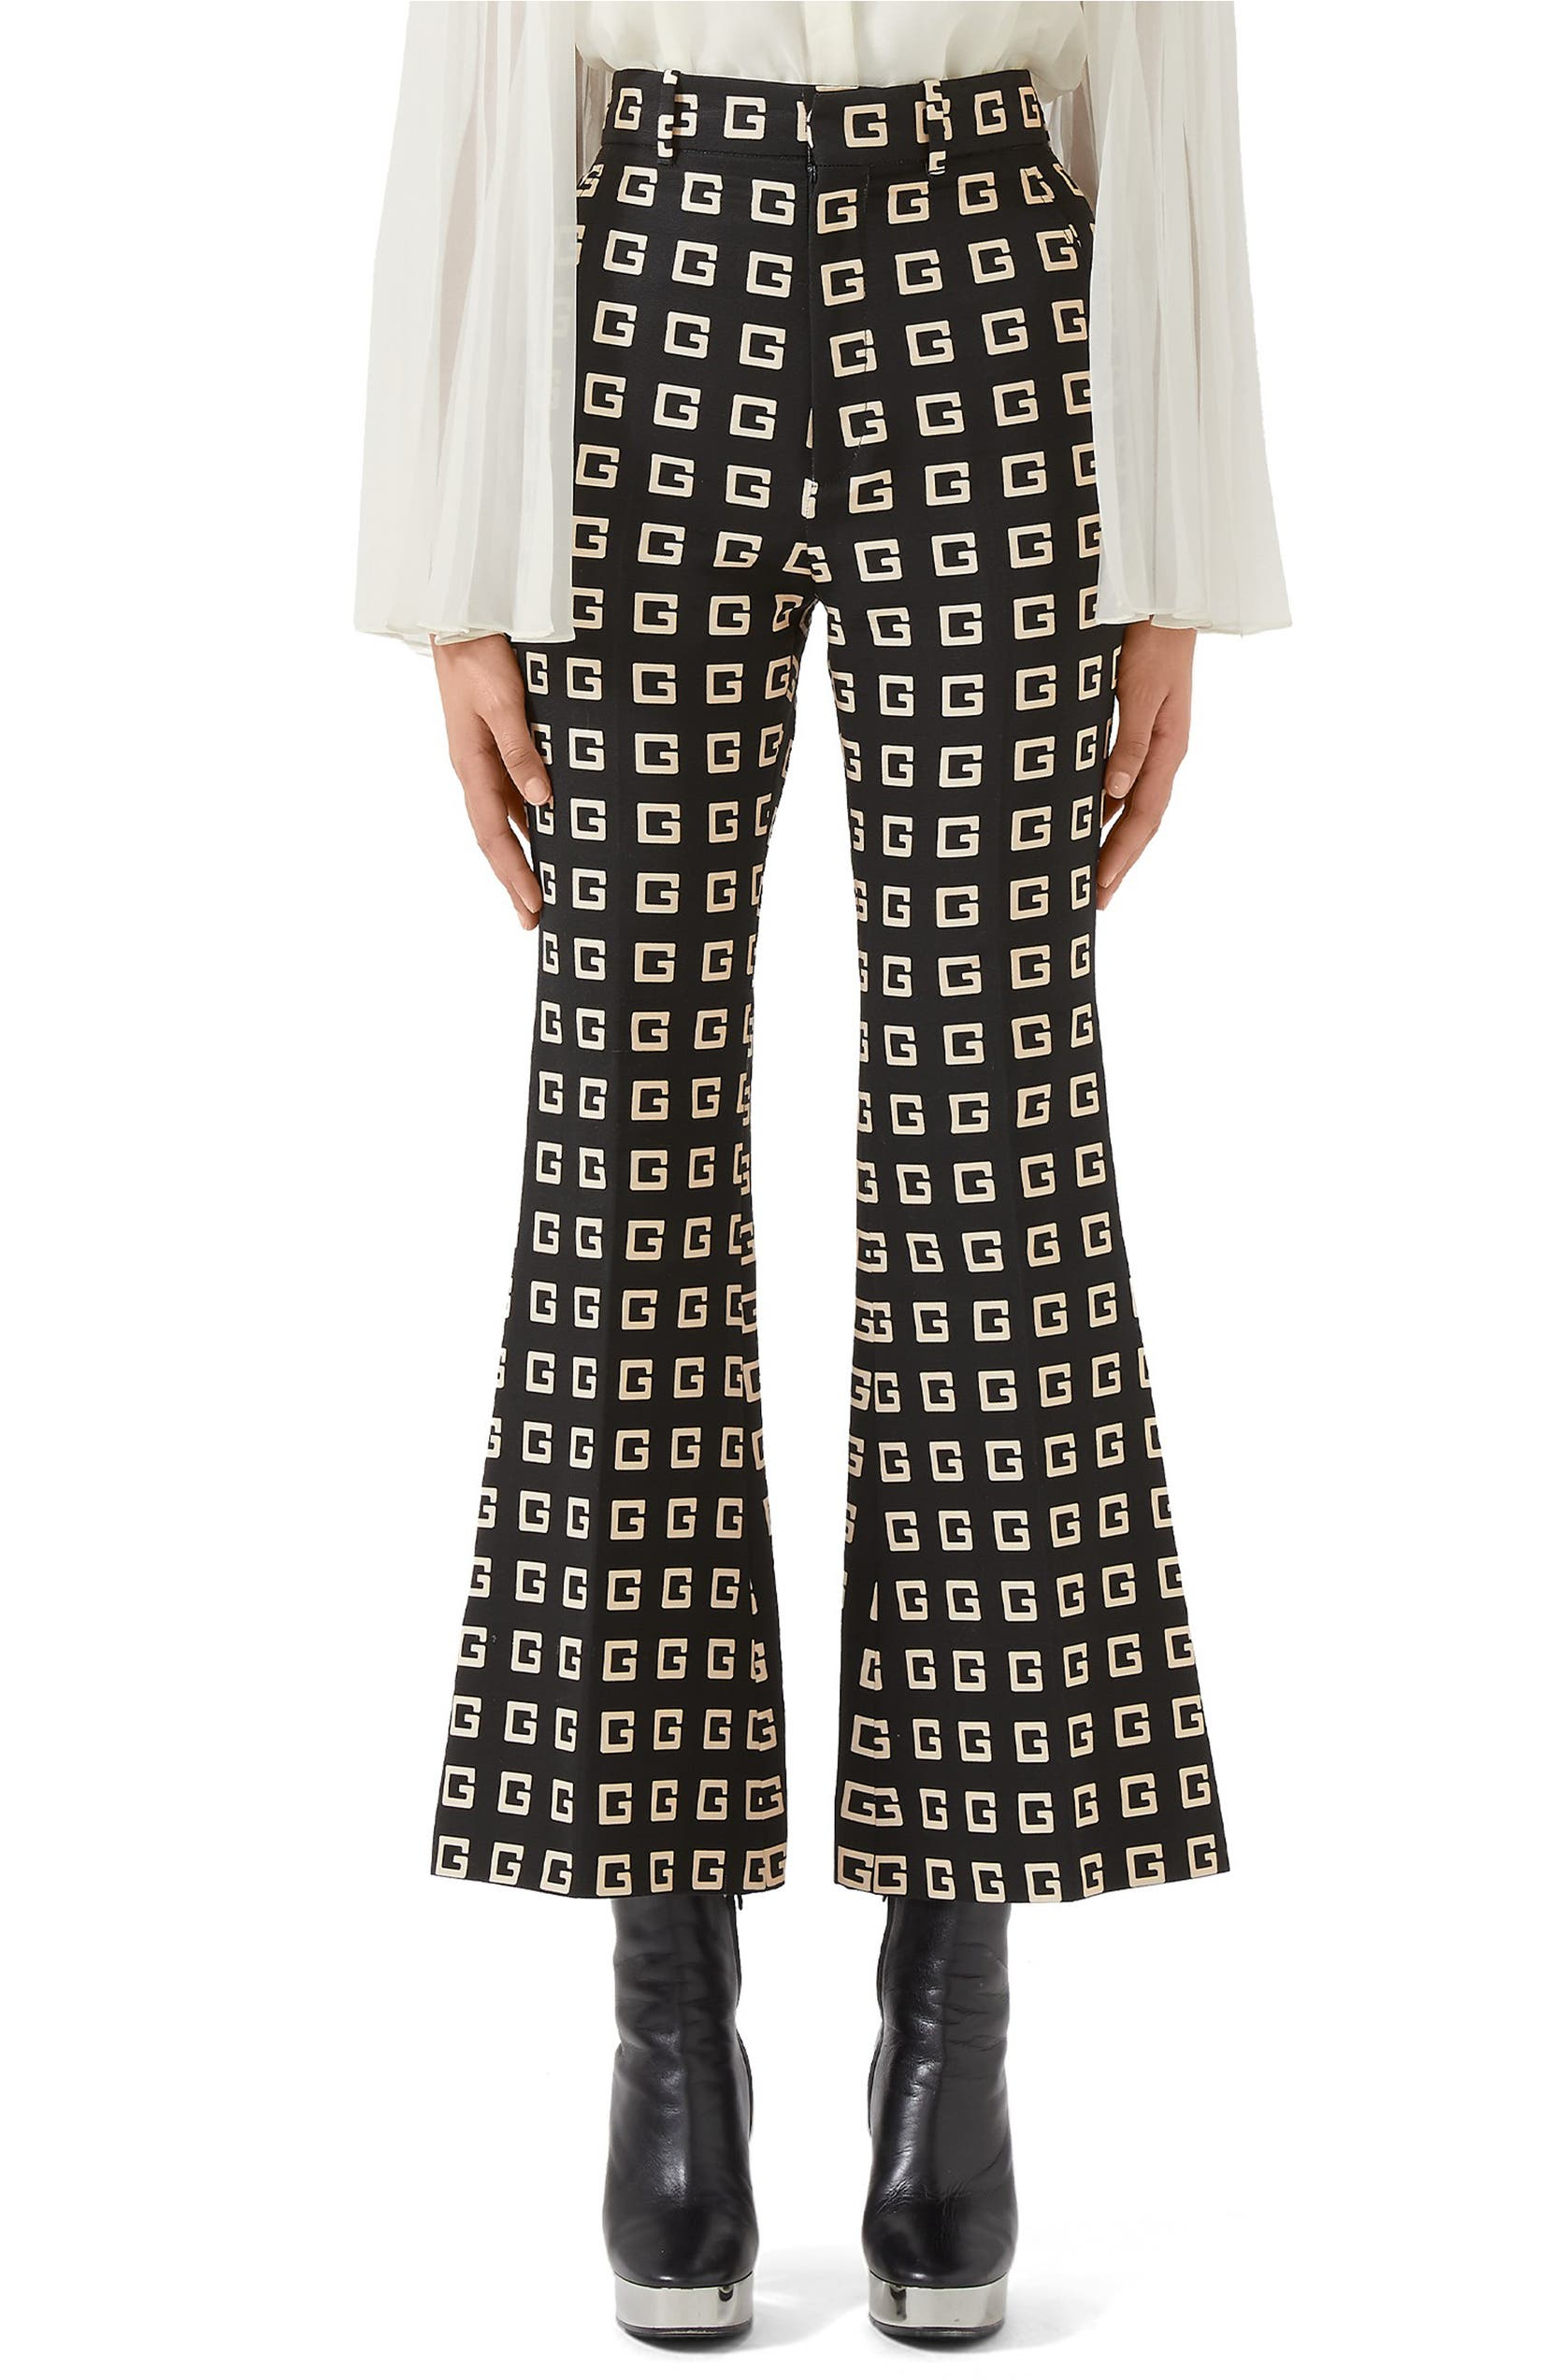 Square-G Logo Print Faille Crop Flare Pants by Gucci, available on nordstrom.com for $1100 Kendall Jenner Pants Exact Product